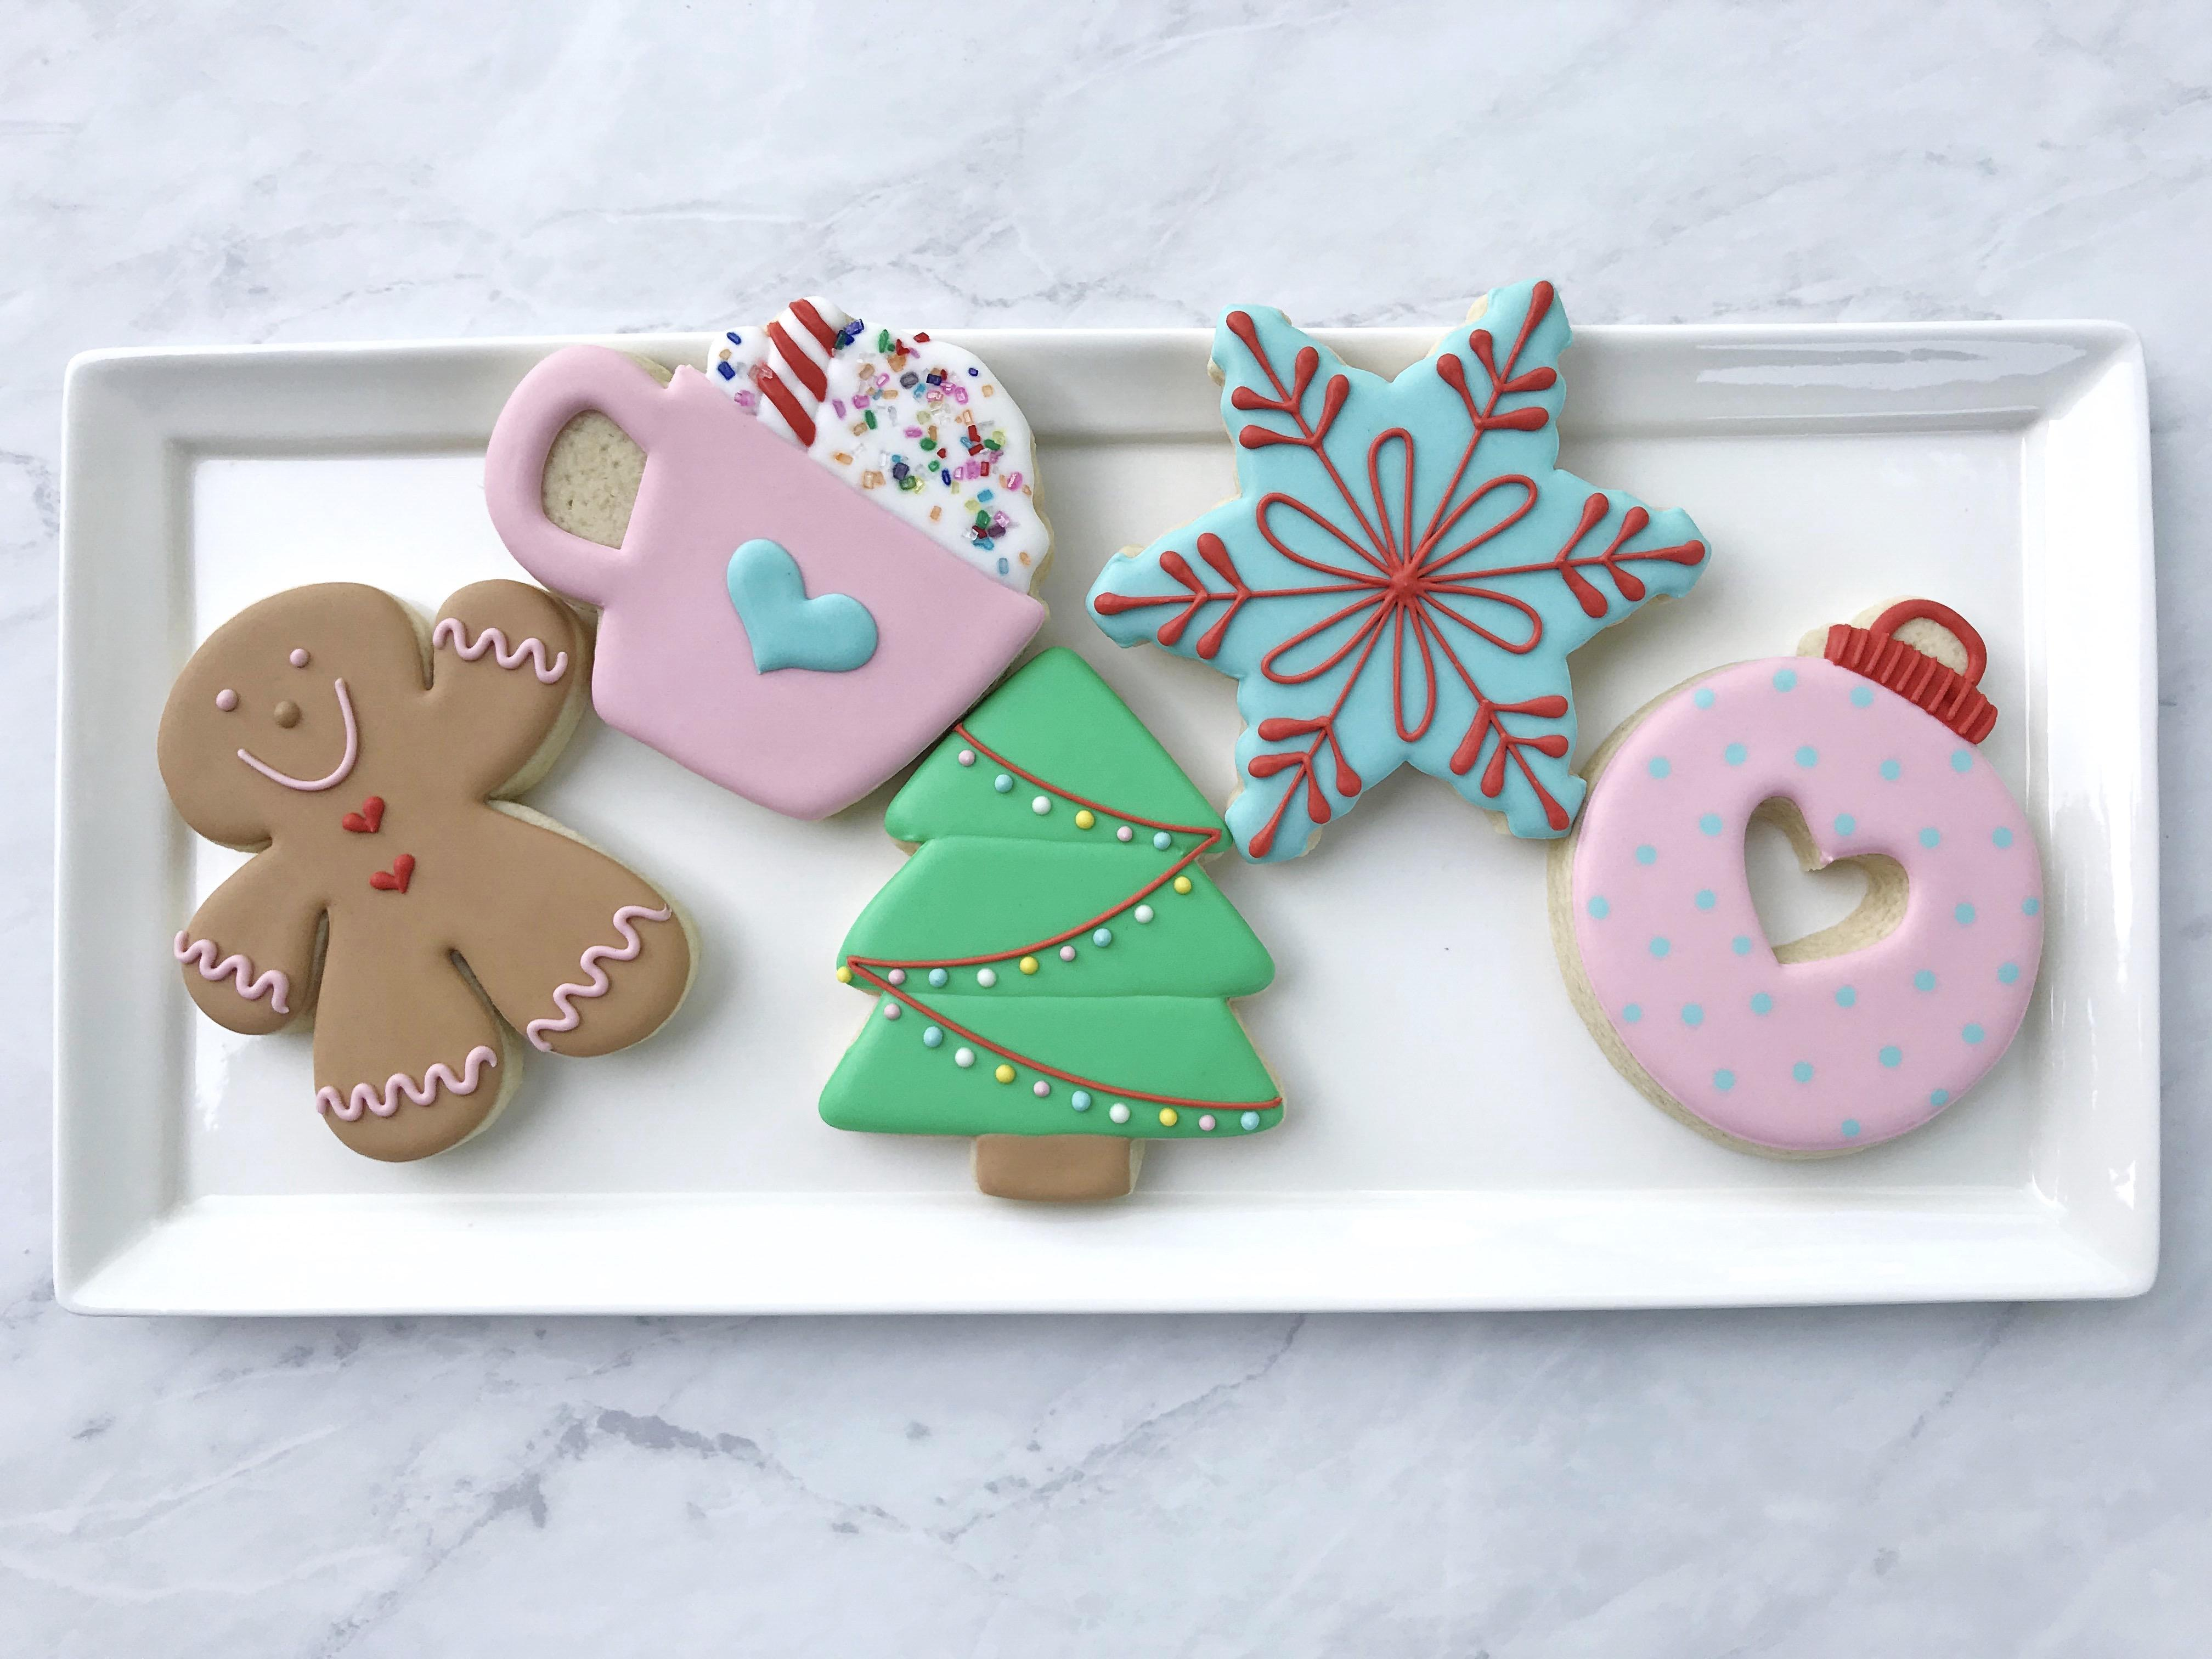 Christmas Cookies December 2020 Christmas Cookie Decorating Class For Beginners   11 DEC 2020